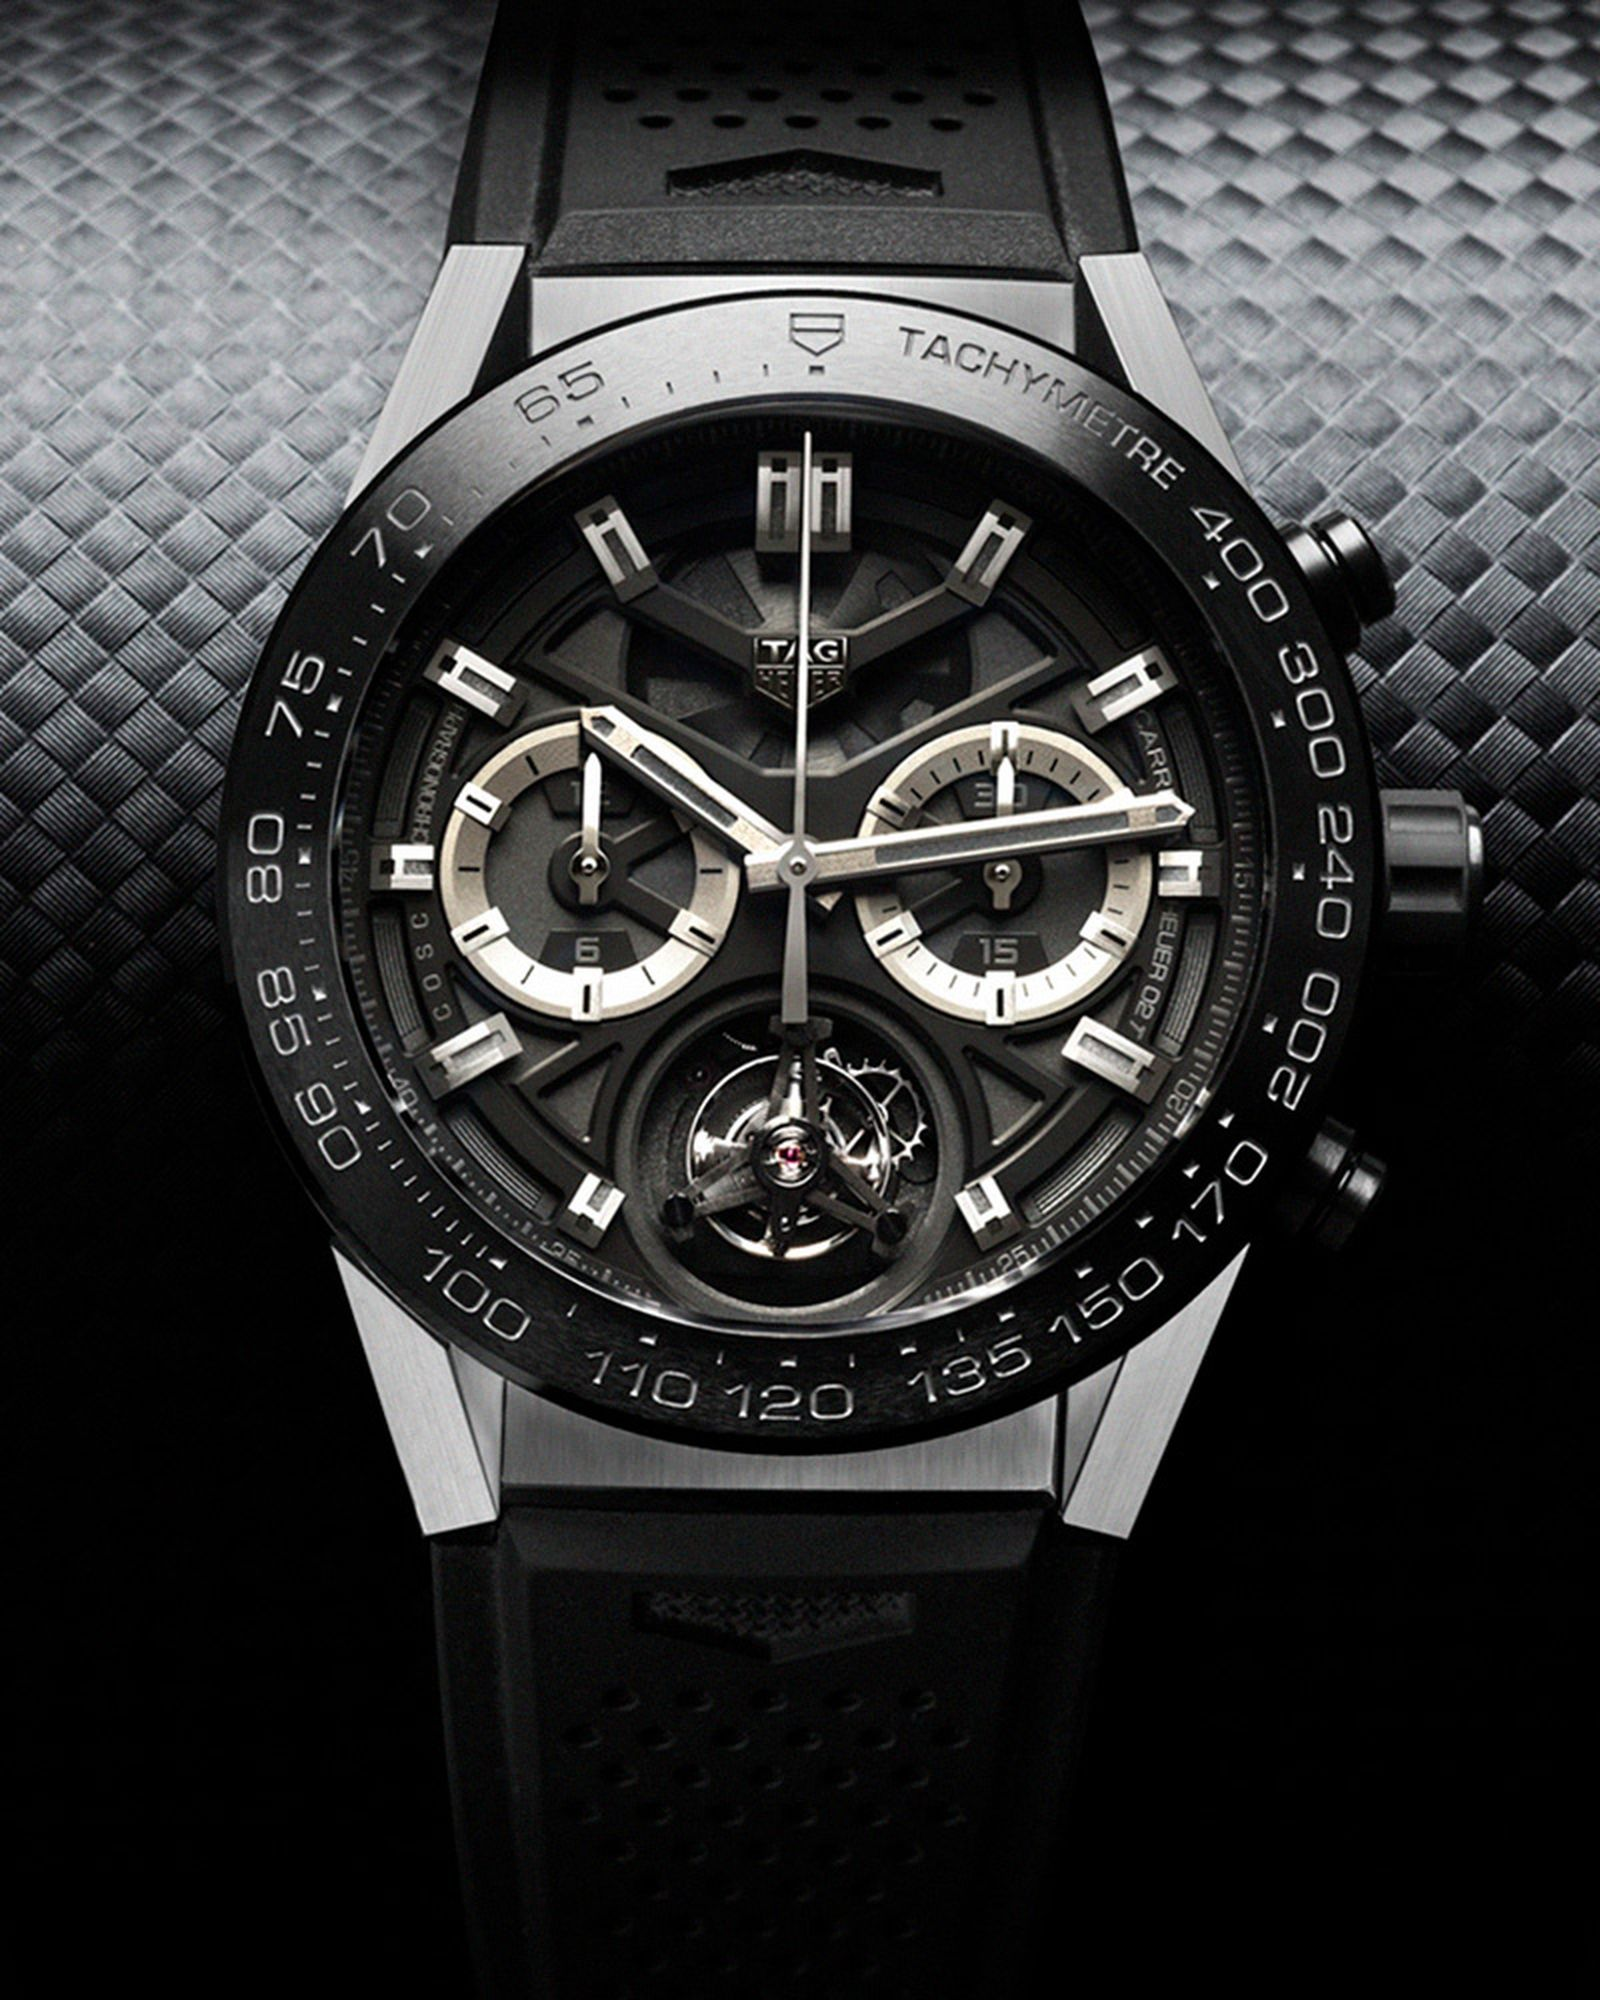 why watches cost so much money apple hublot patek philippe